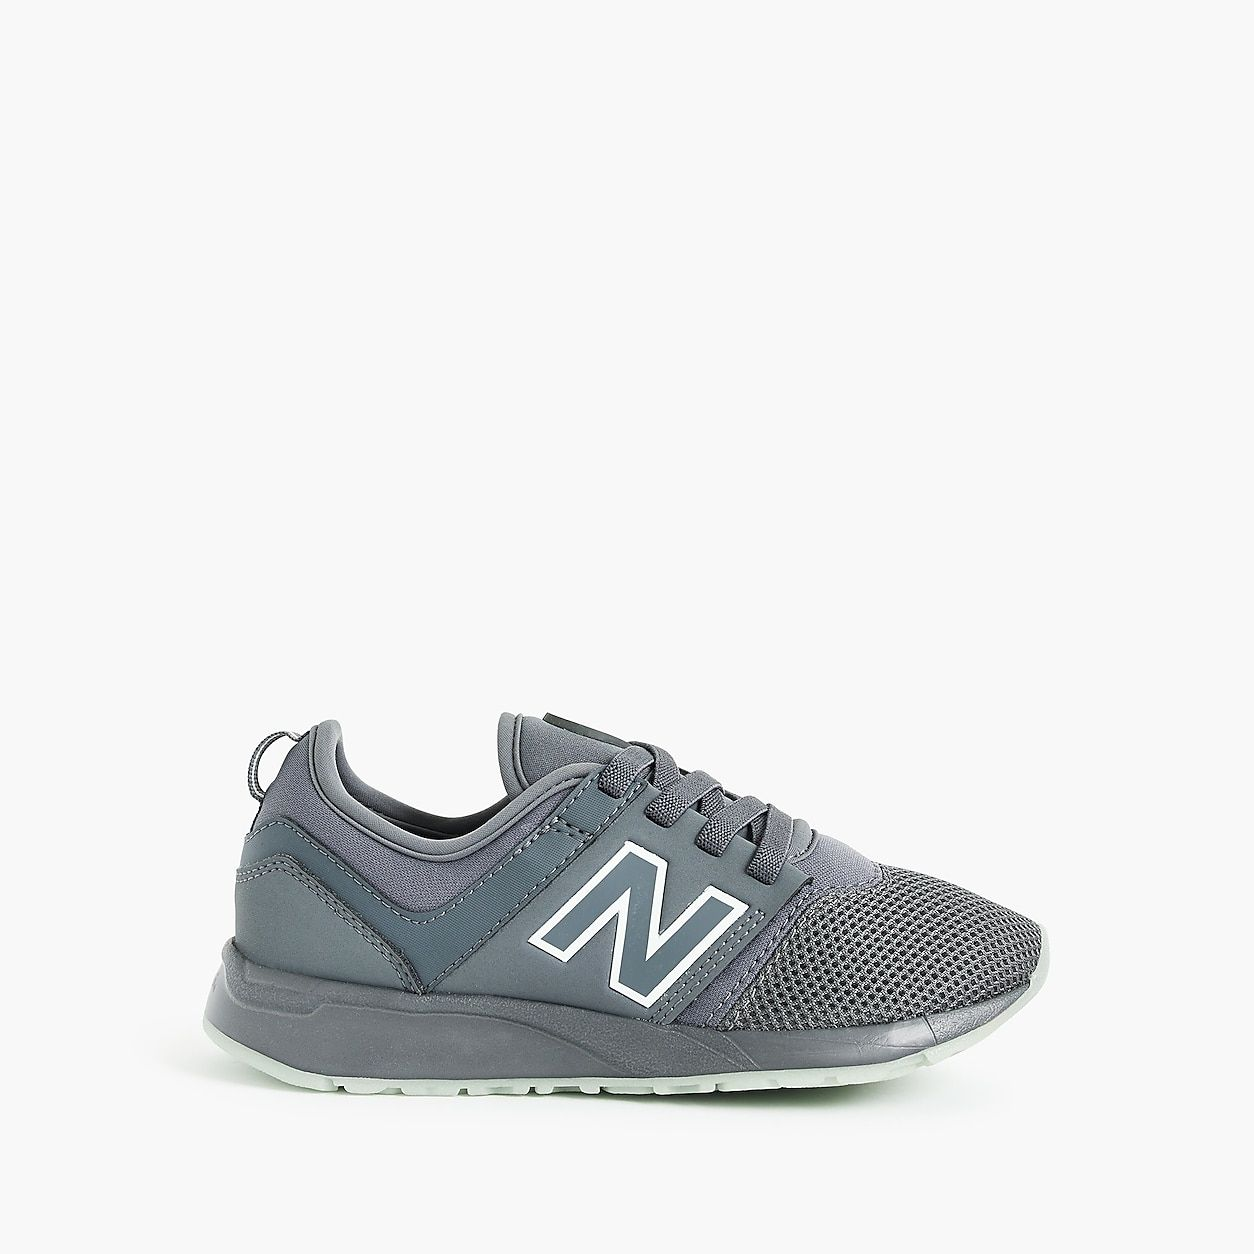 1acd9e9fba New Balance For Crewcuts 24/7 Sneakers With No-Tie Laces | Products ...